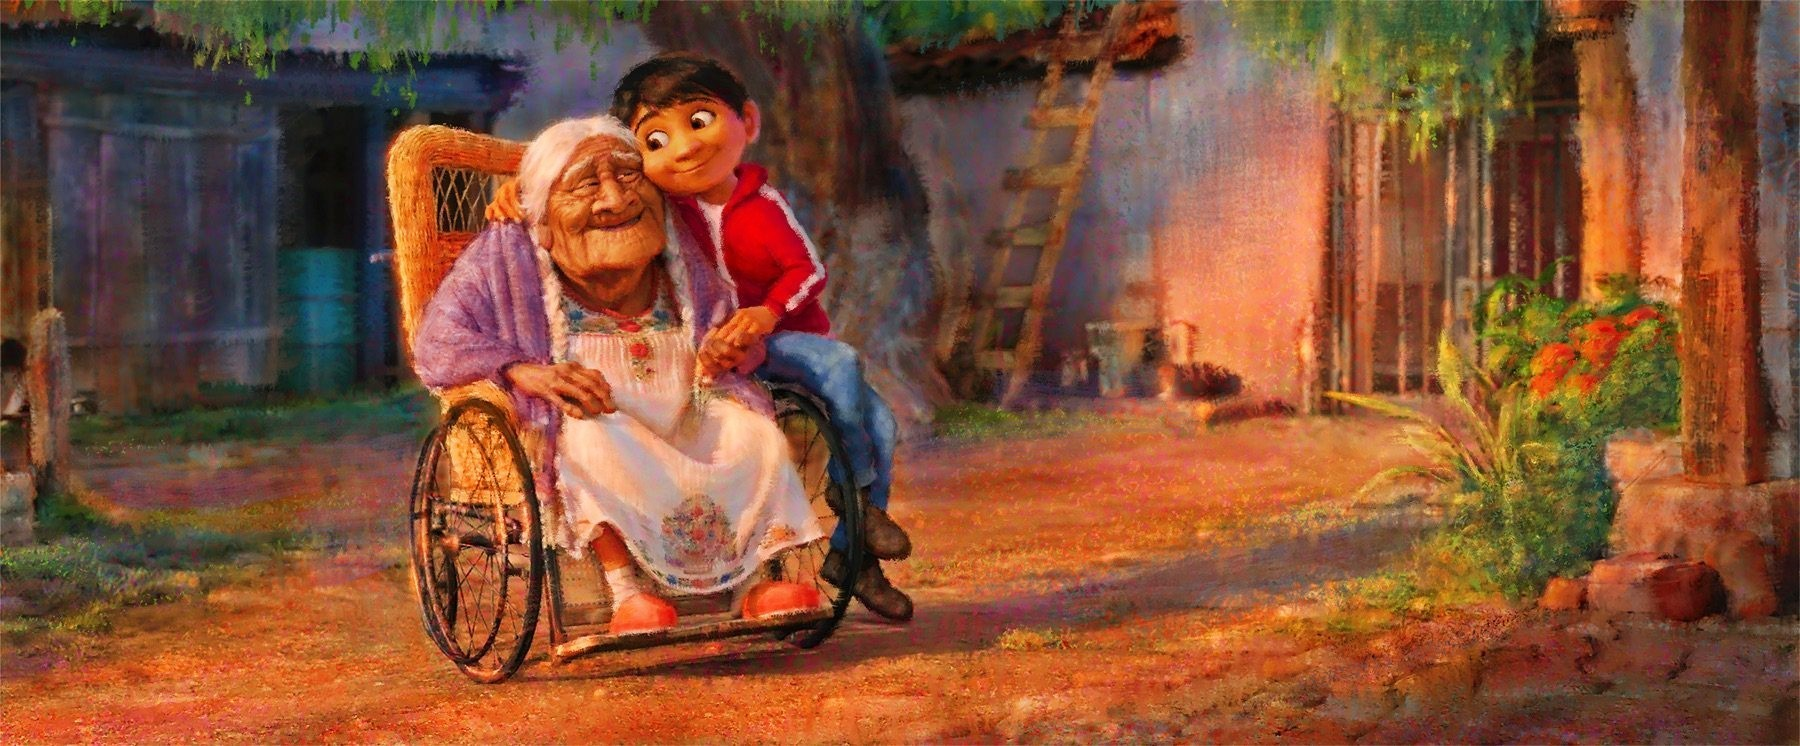 Miguel from Walt Disney Pictures' Coco (2017)